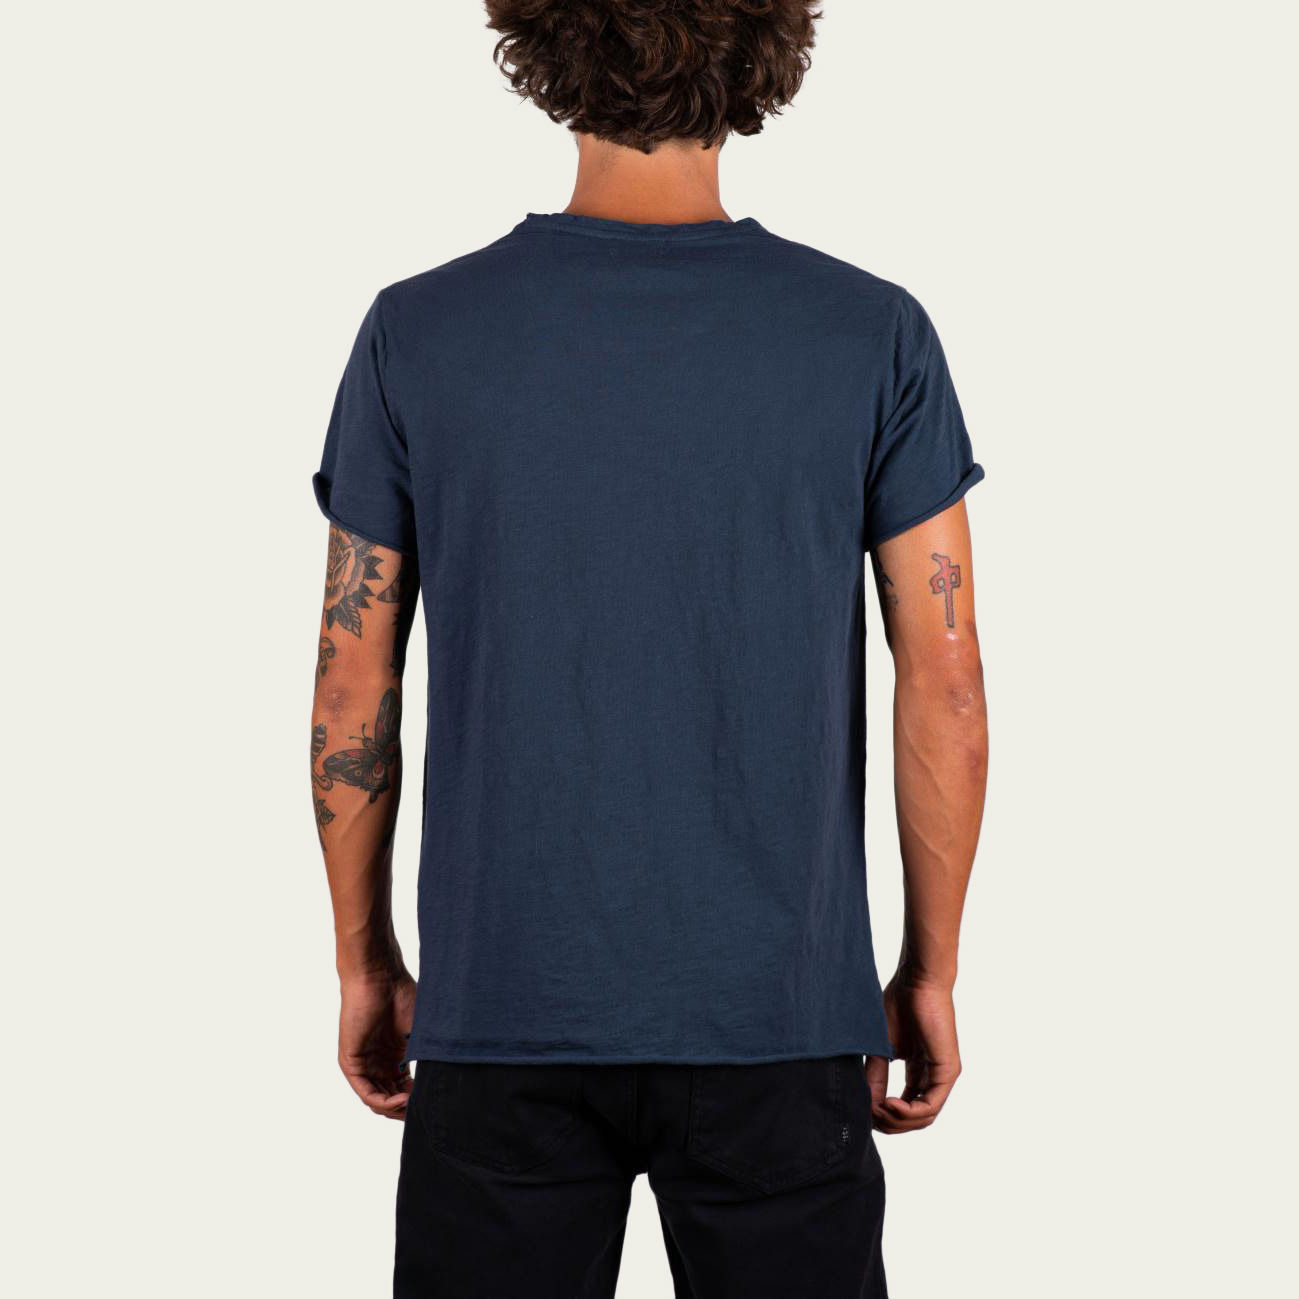 Blue Fade Out and Sand Plus 351 Tee-shirt | Bombinate